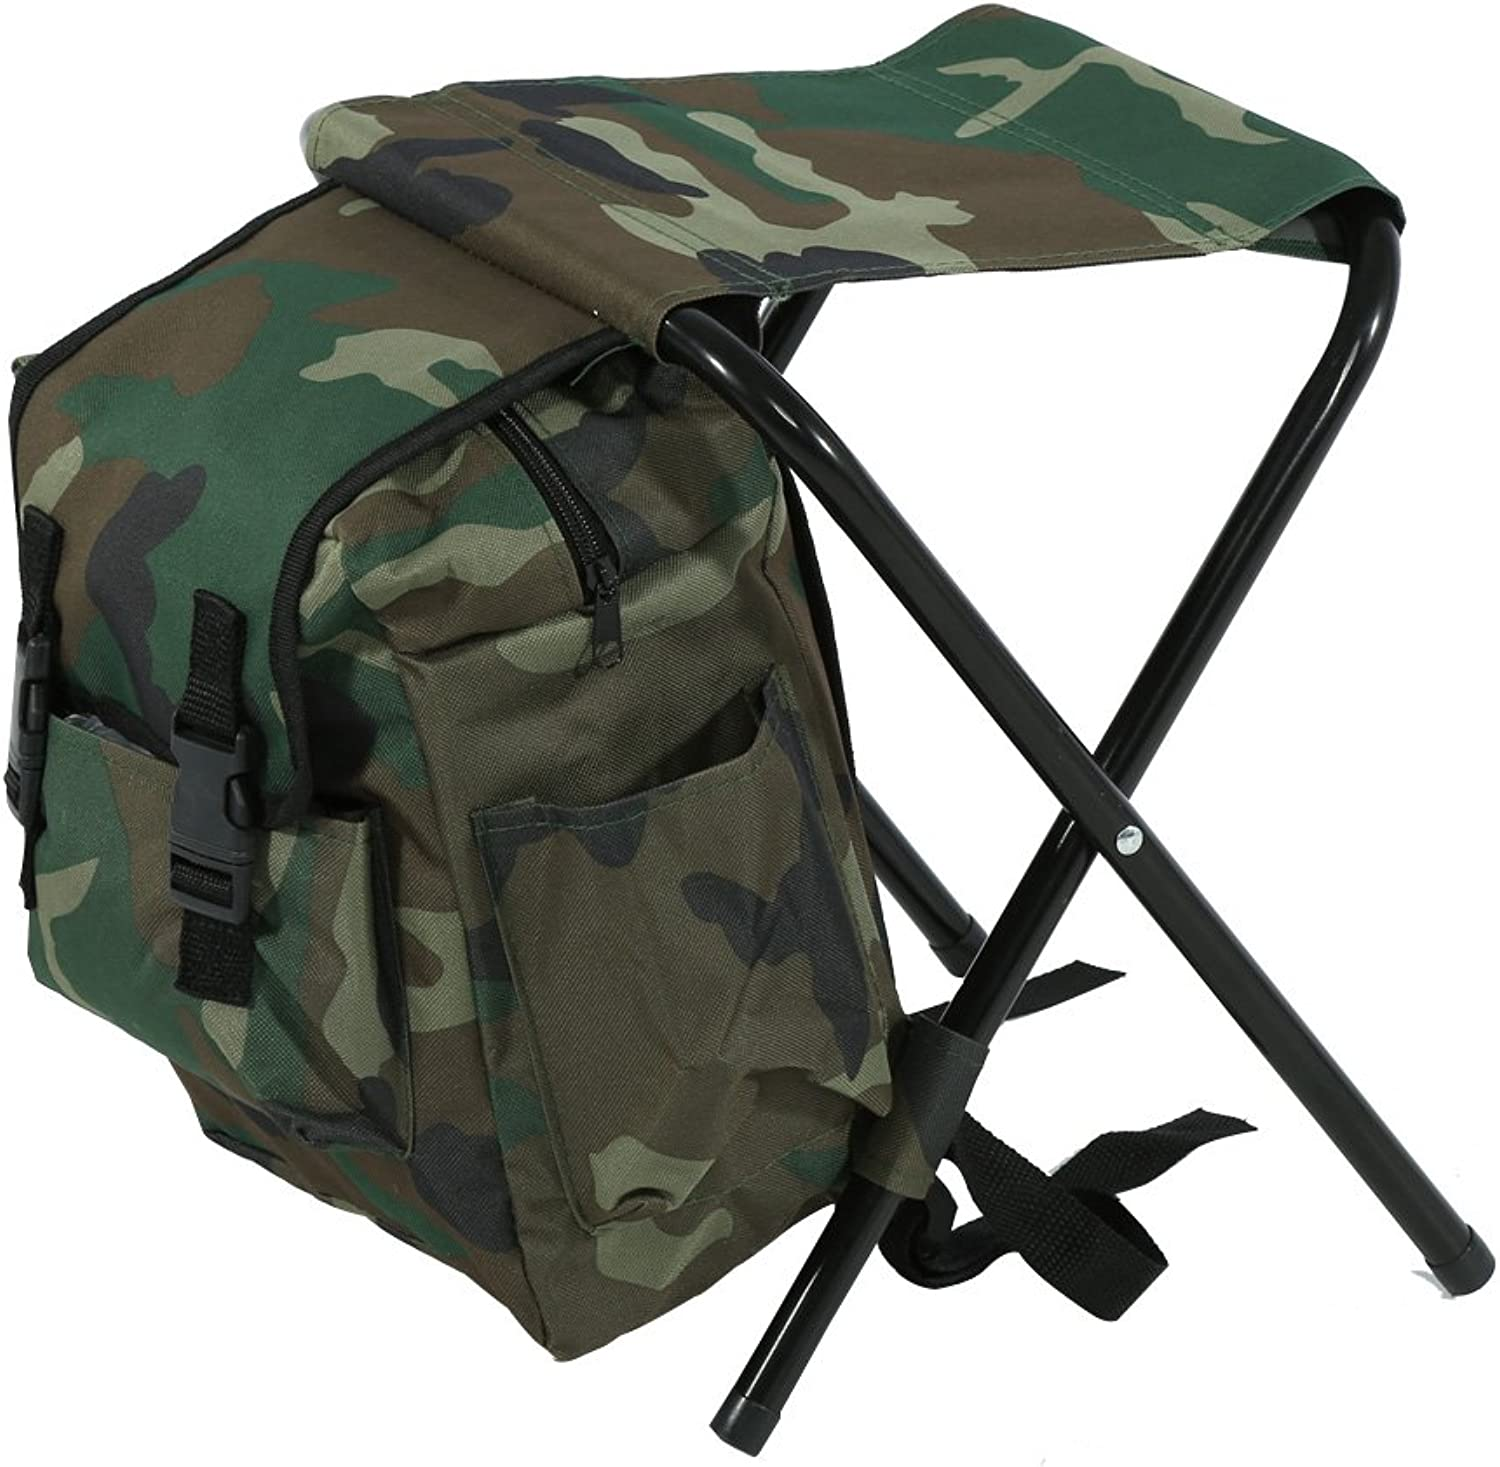 Foldable Fishing Stool, Outdoor Camping Convenient Carry Seat with Storage Bag